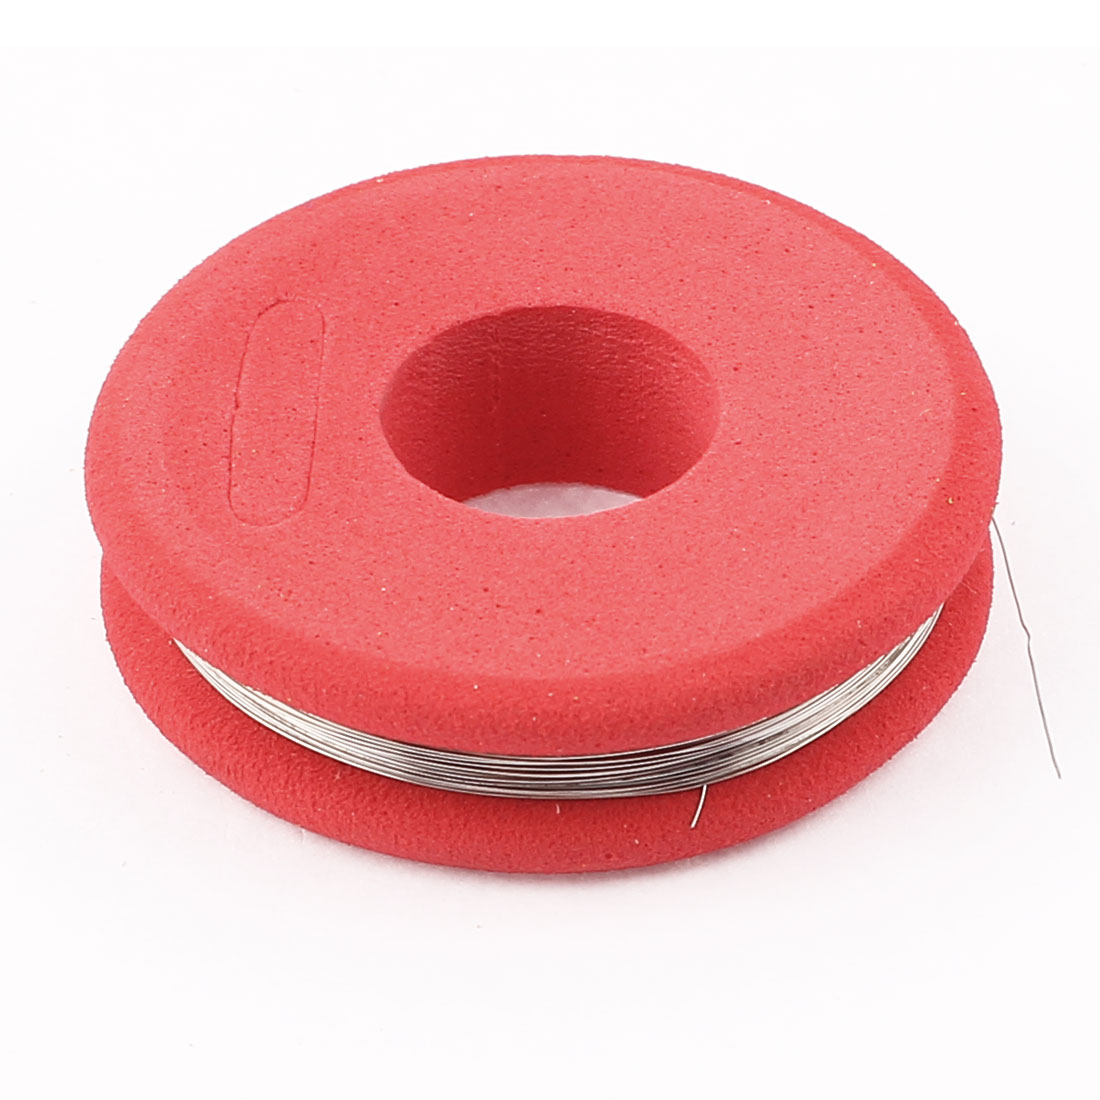 7.5m 24.6ft Constantan 33AWG 0.17mm 27.1ohm/m Heater Wire